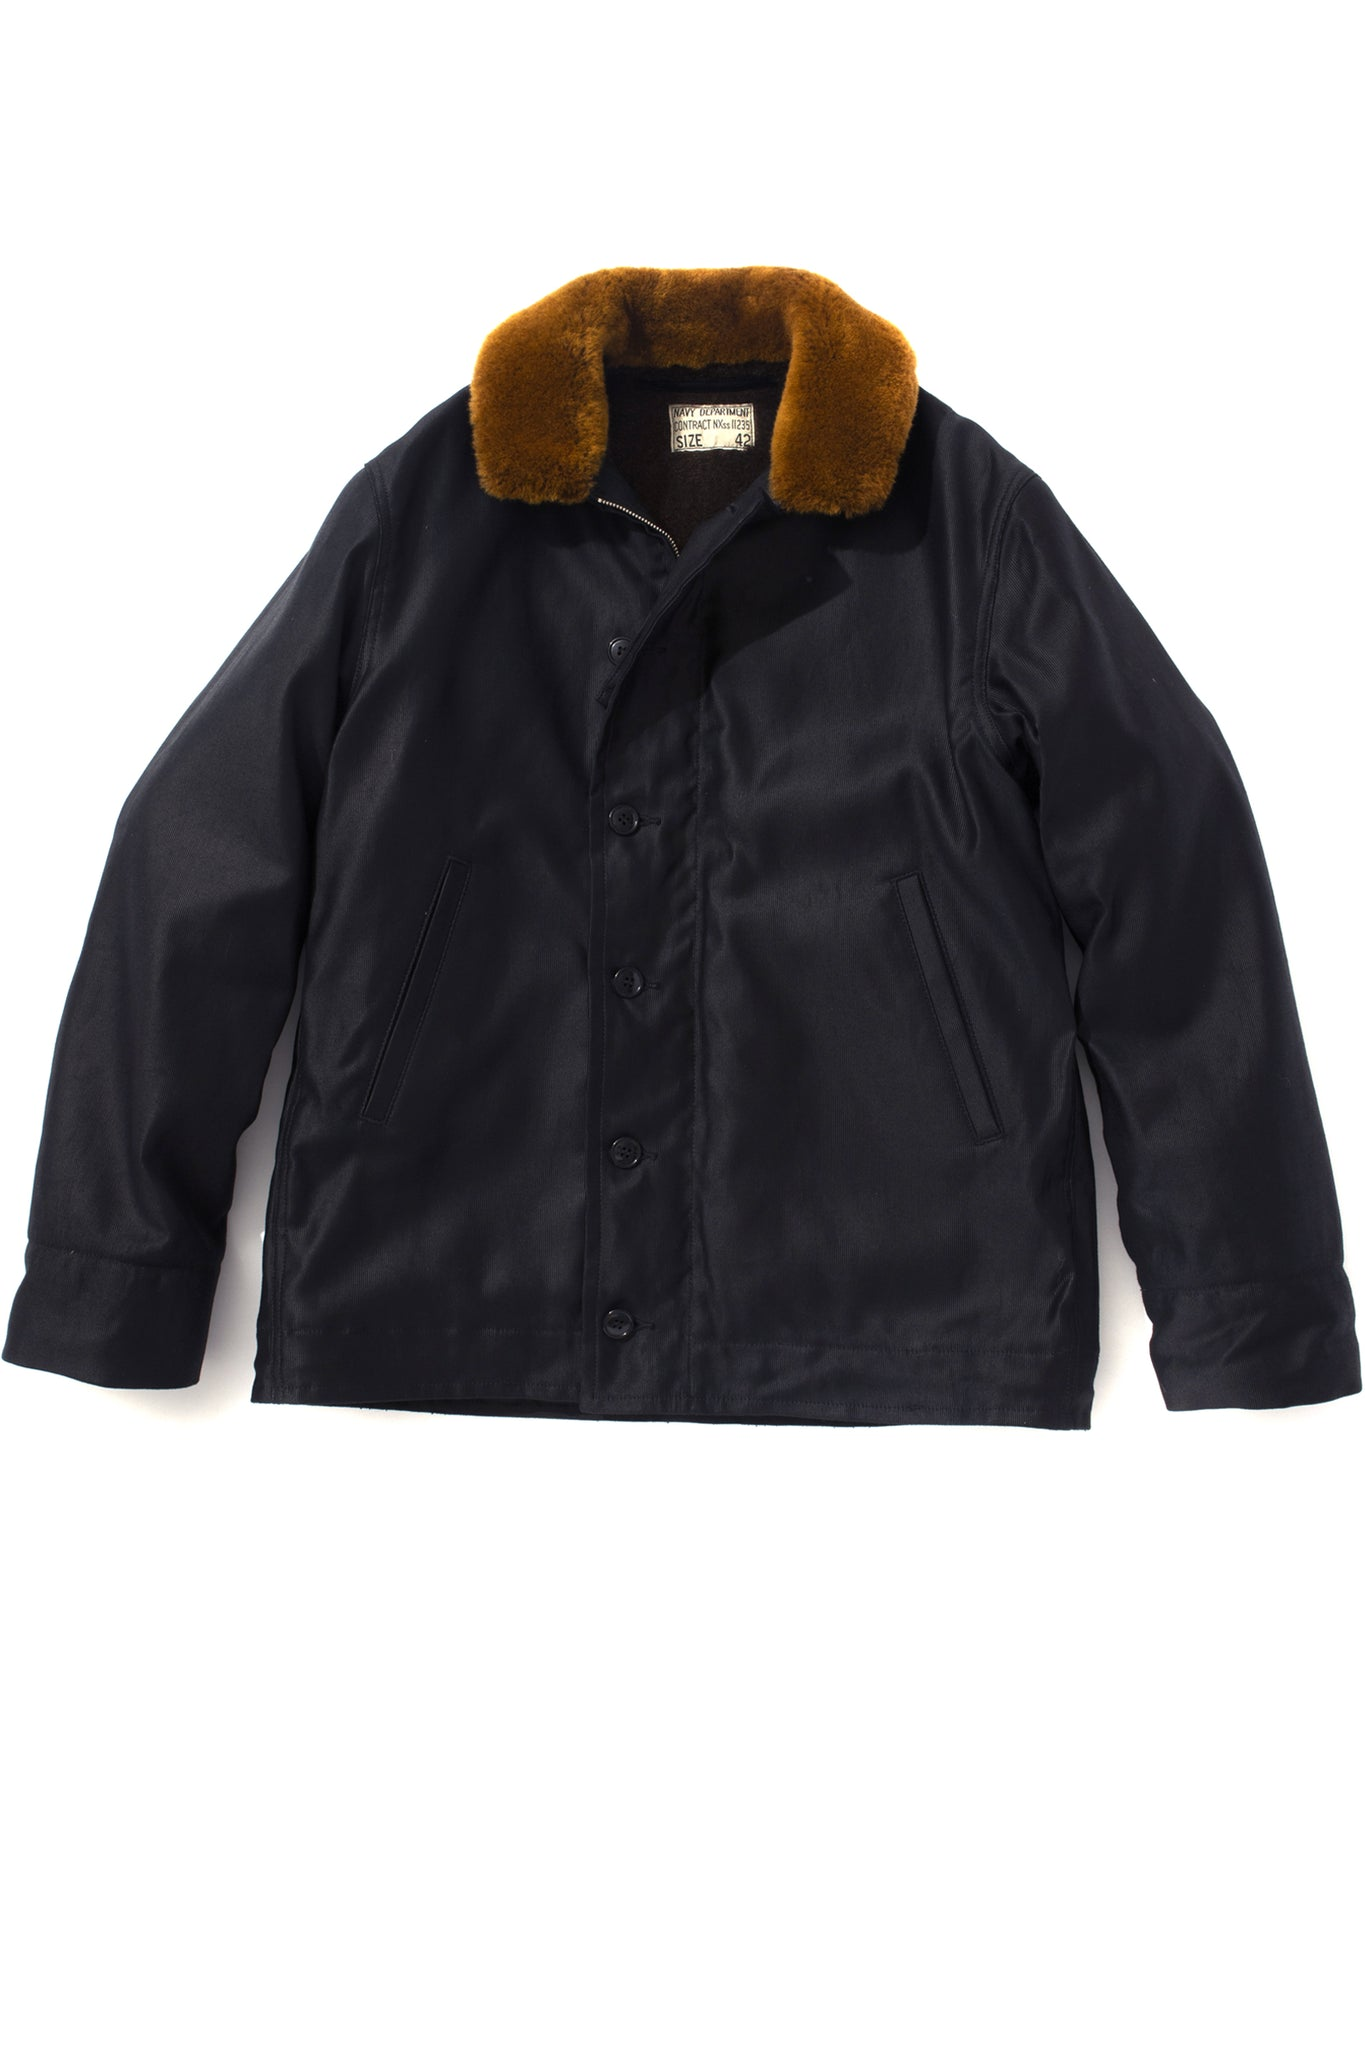 N-1 DECK JACKET / NAVY SPL